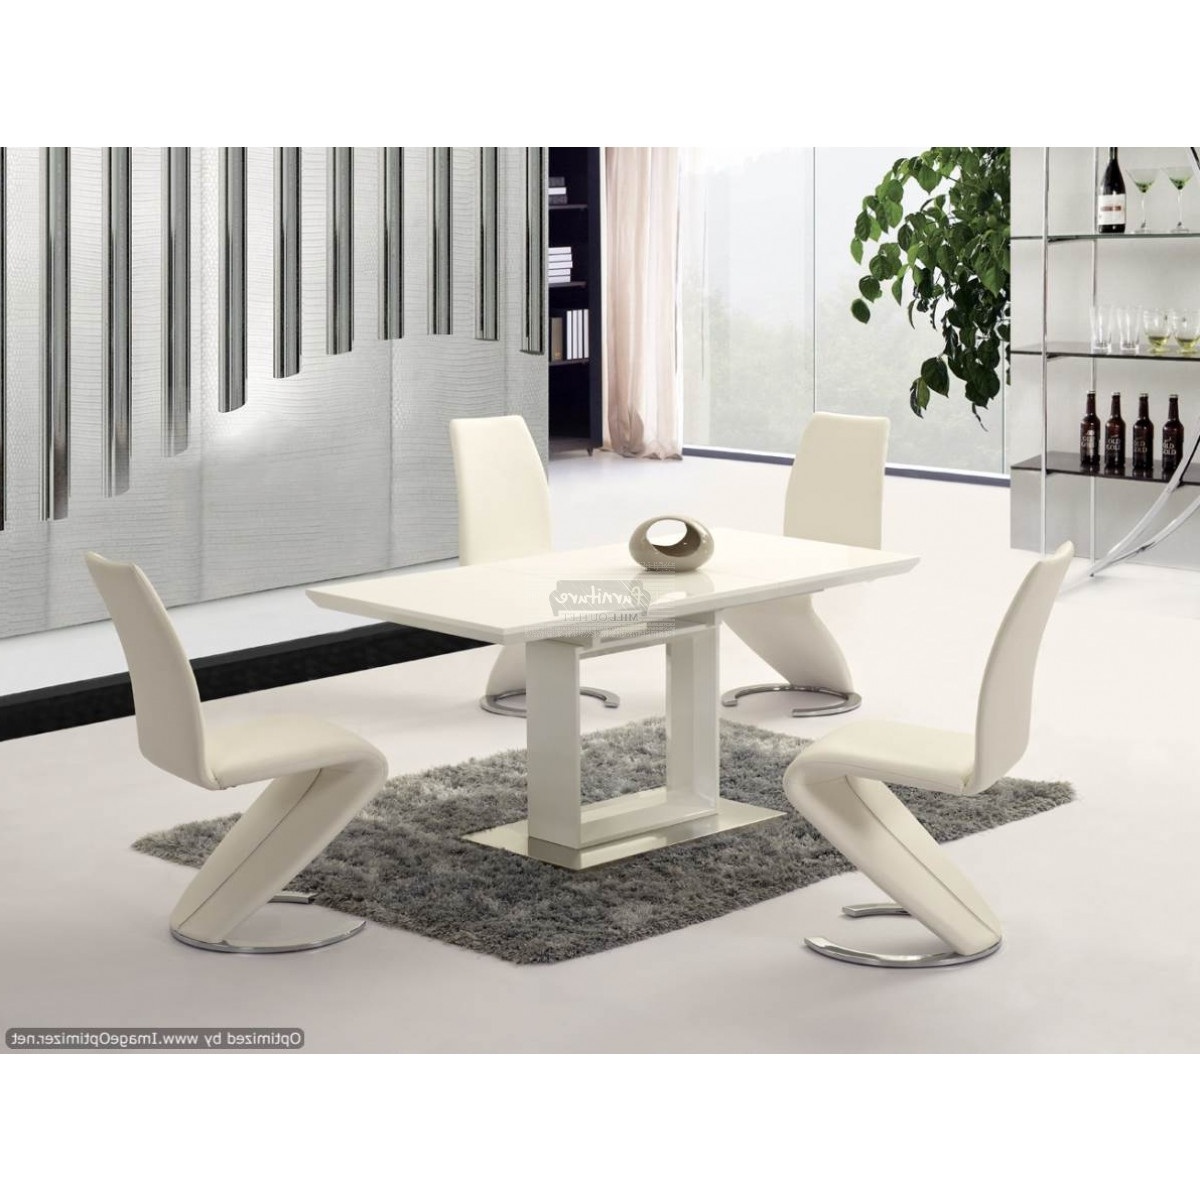 Most Recent White High Gloss Dining Tables 6 Chairs In Space White High Gloss Extending Dining Table – 120Cm To 160Cm (View 12 of 25)